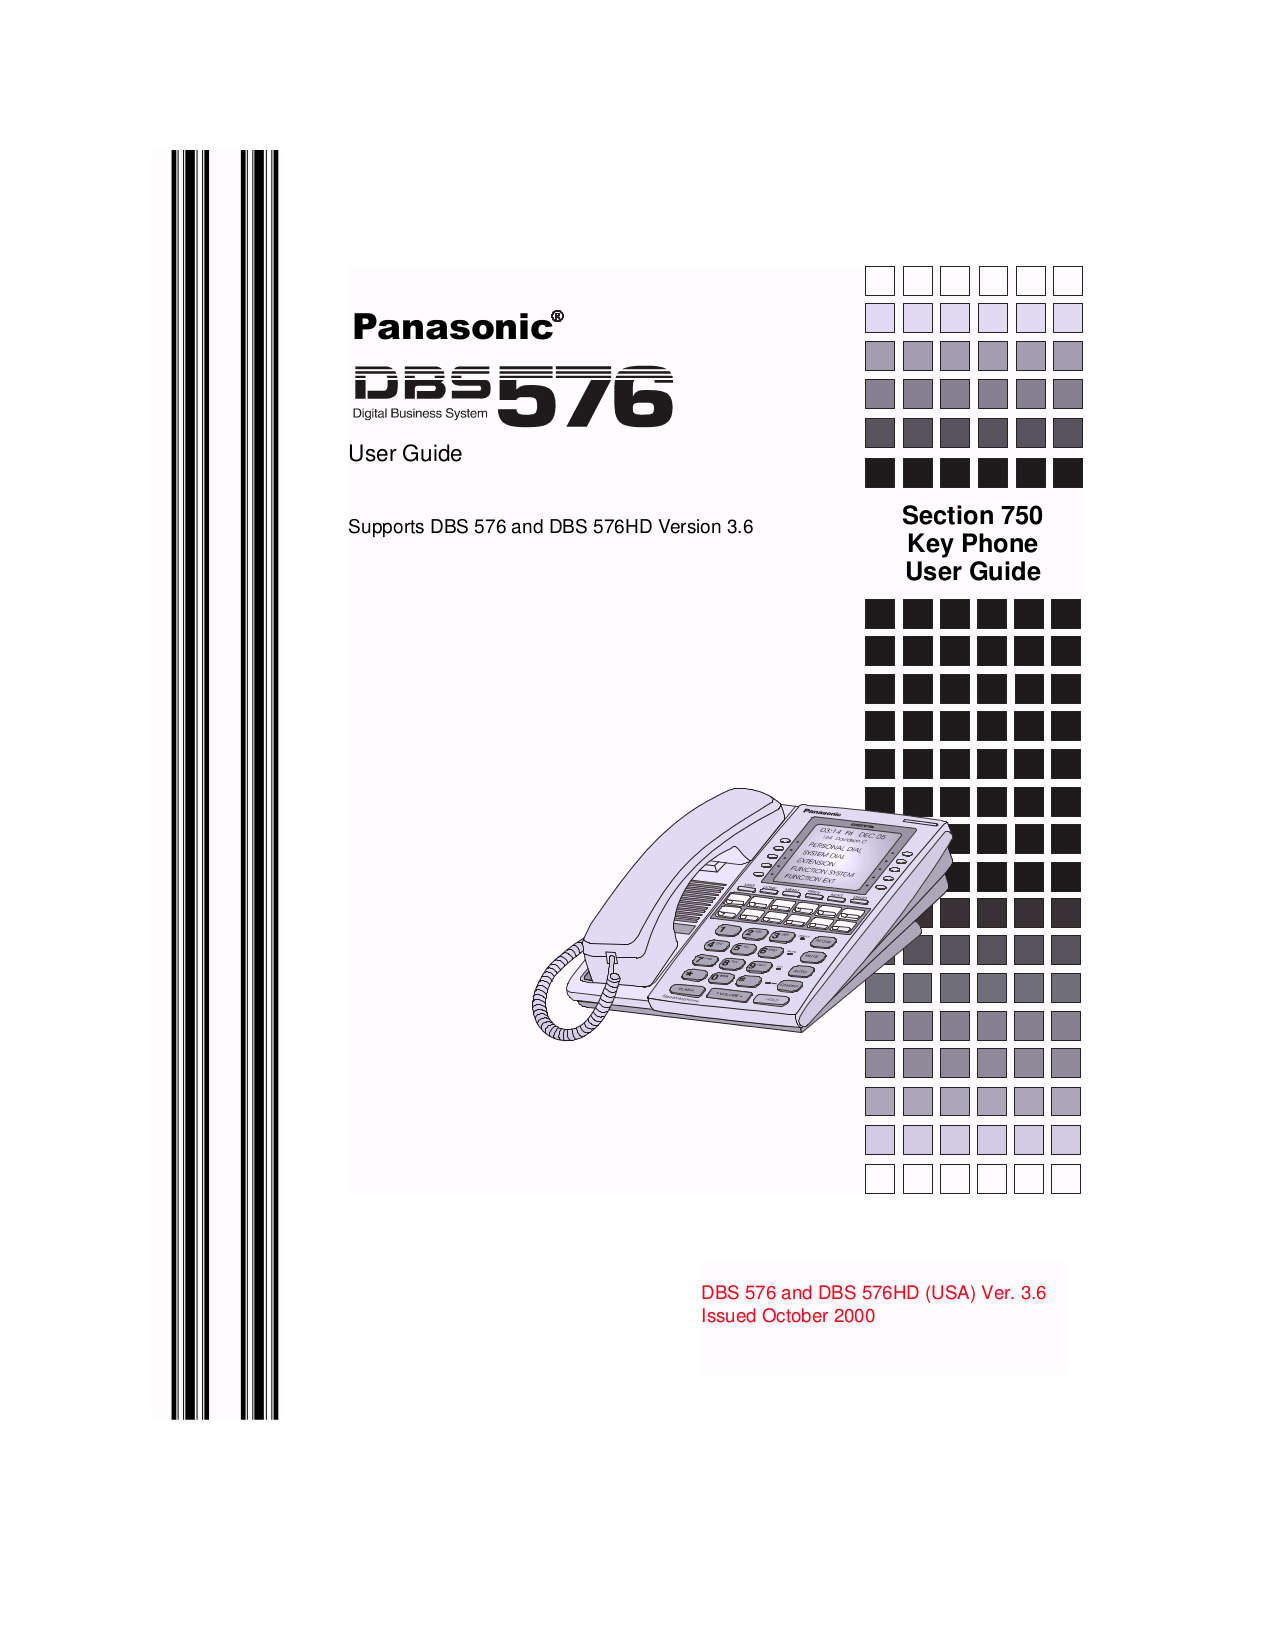 Download free pdf for Panasonic VB-44230G Telephone manual